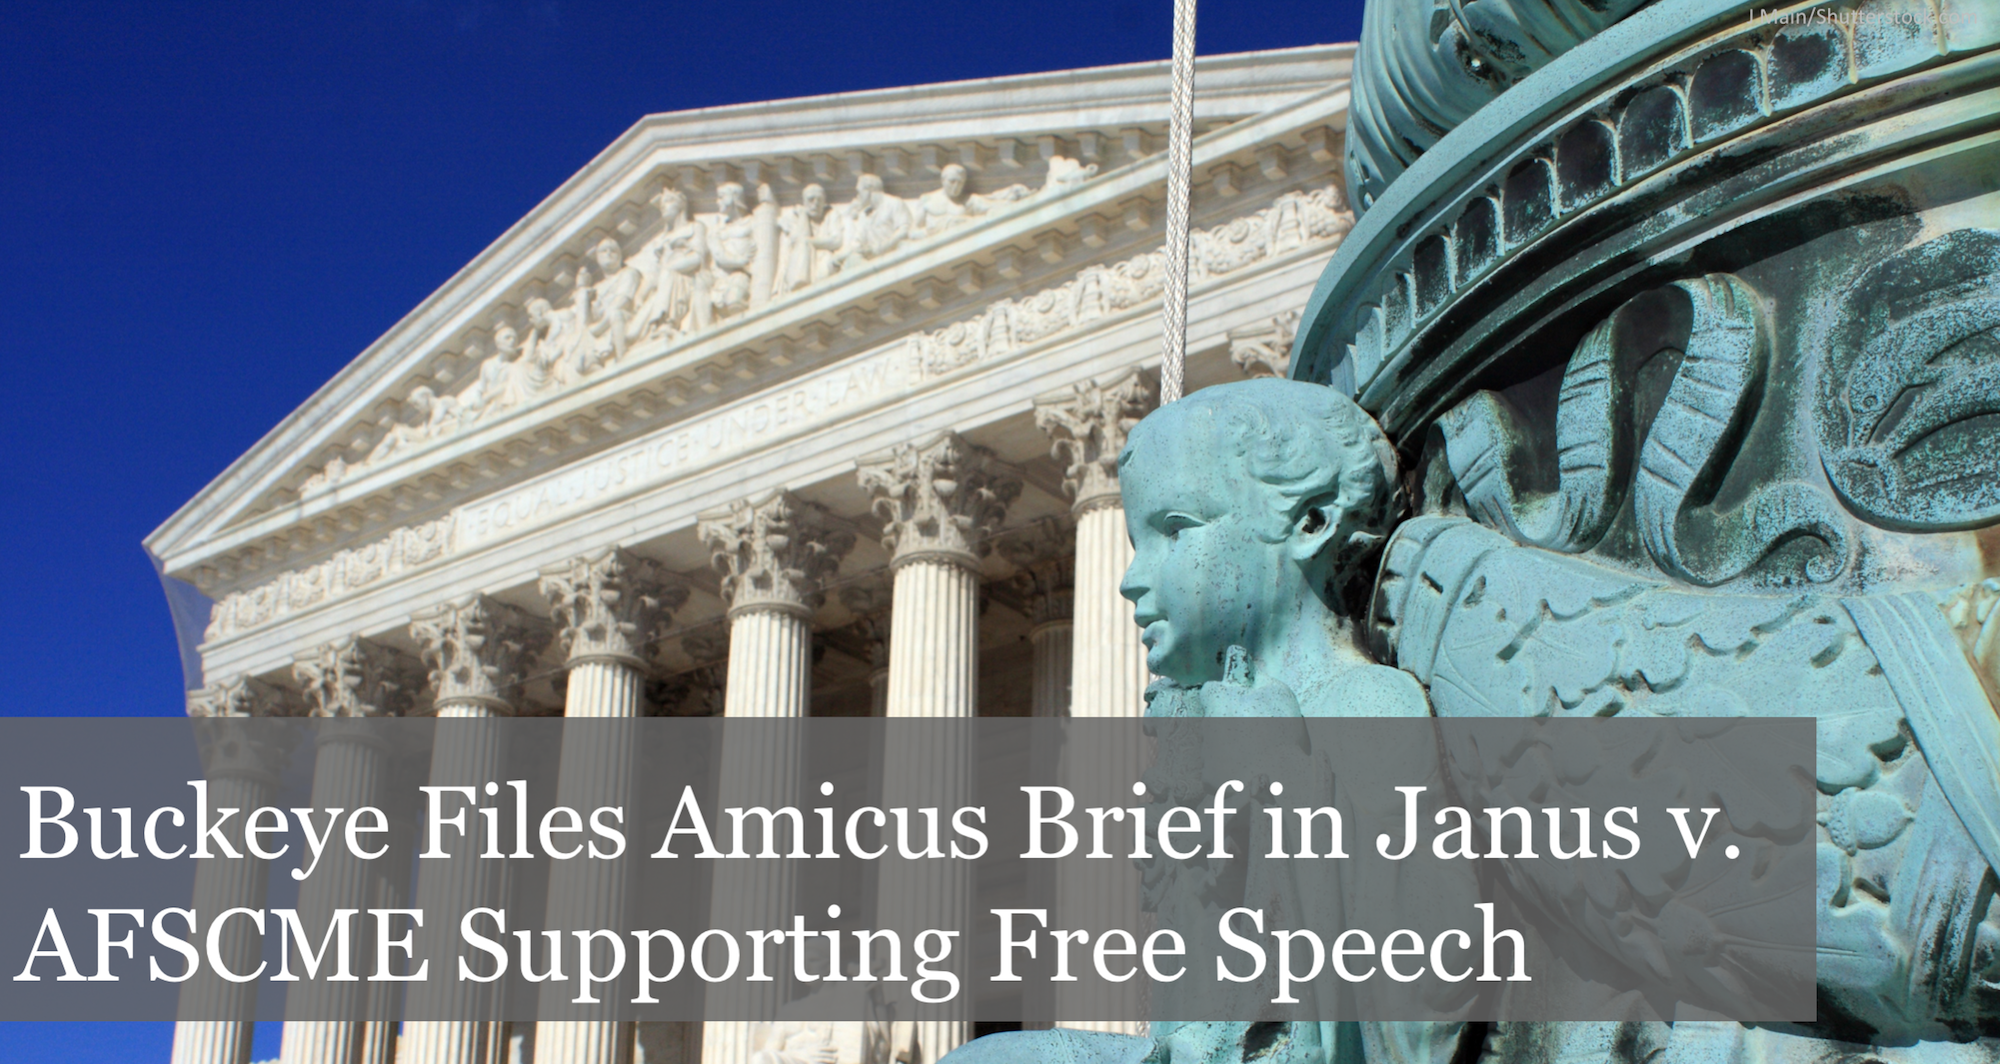 The Buckeye Institute Files Amicus Brief in Janus v. AFSCME Supporting Free Speech